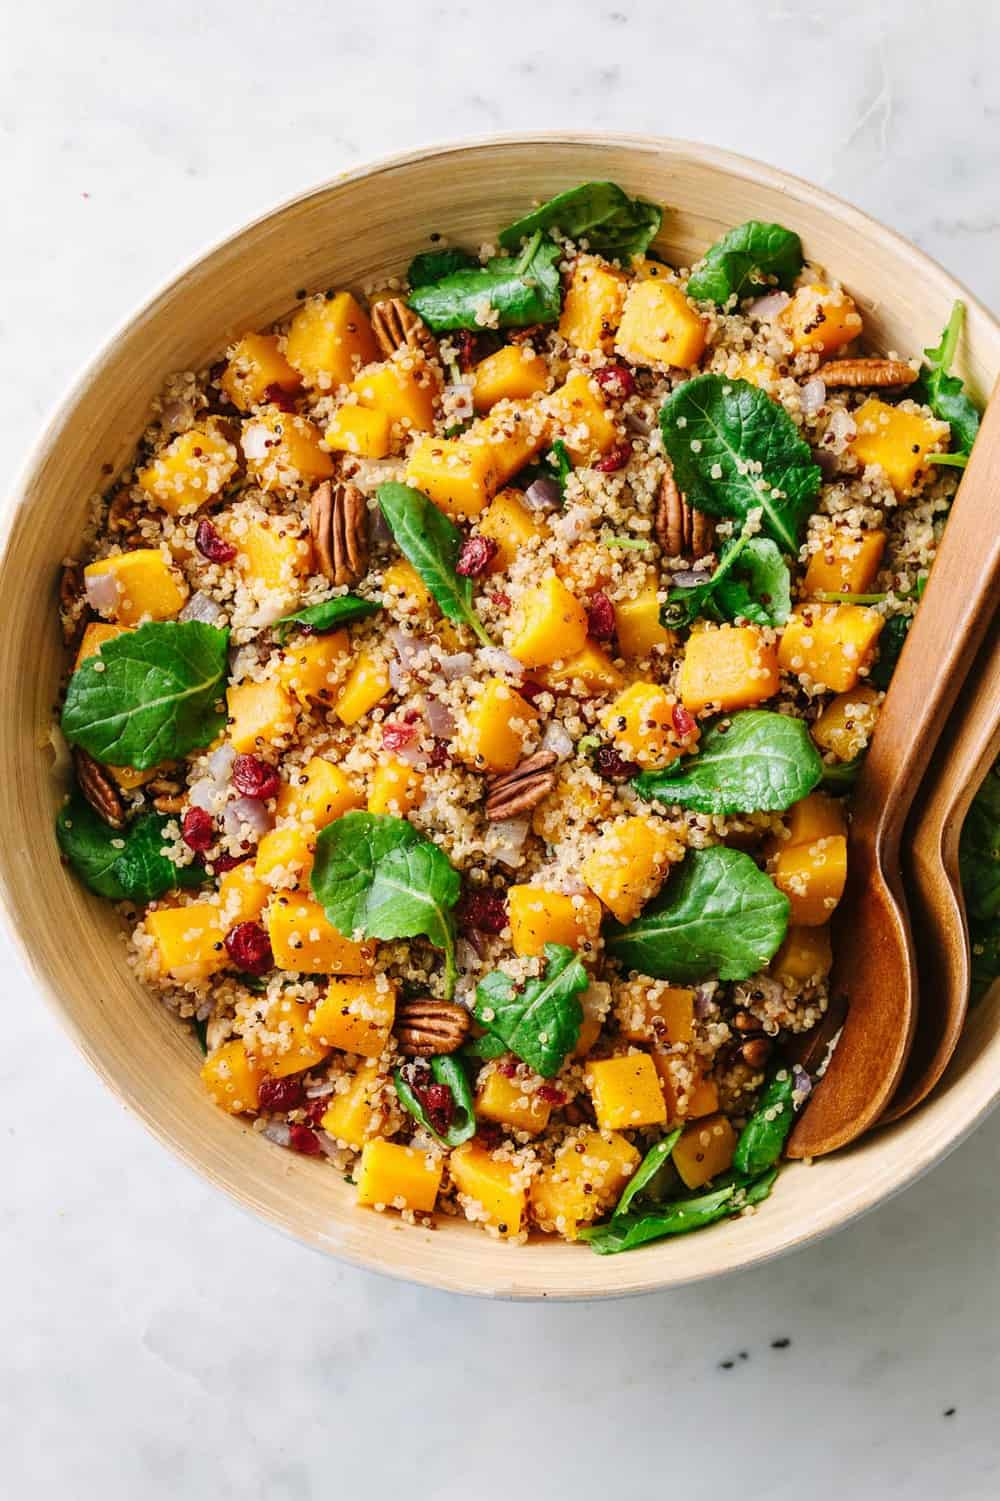 butternut squash quinoa salad mixed together in a mixing bowl with wooden utensils